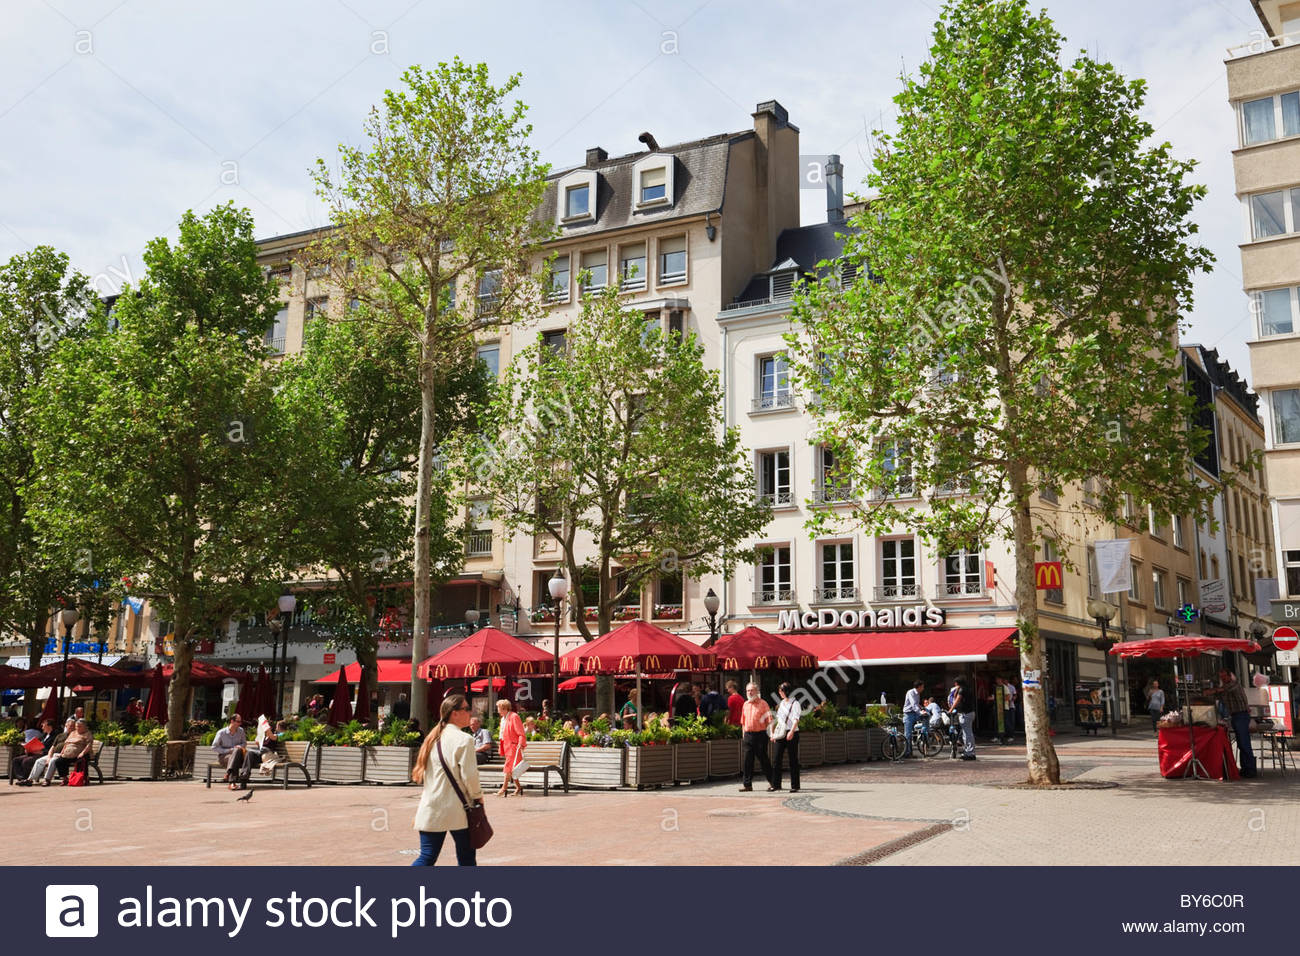 Place d'Armes Luxembourg City, Place d'Armes, Luxembourg, Grand Duchy Luxembourg, Europe. Outdoor ...